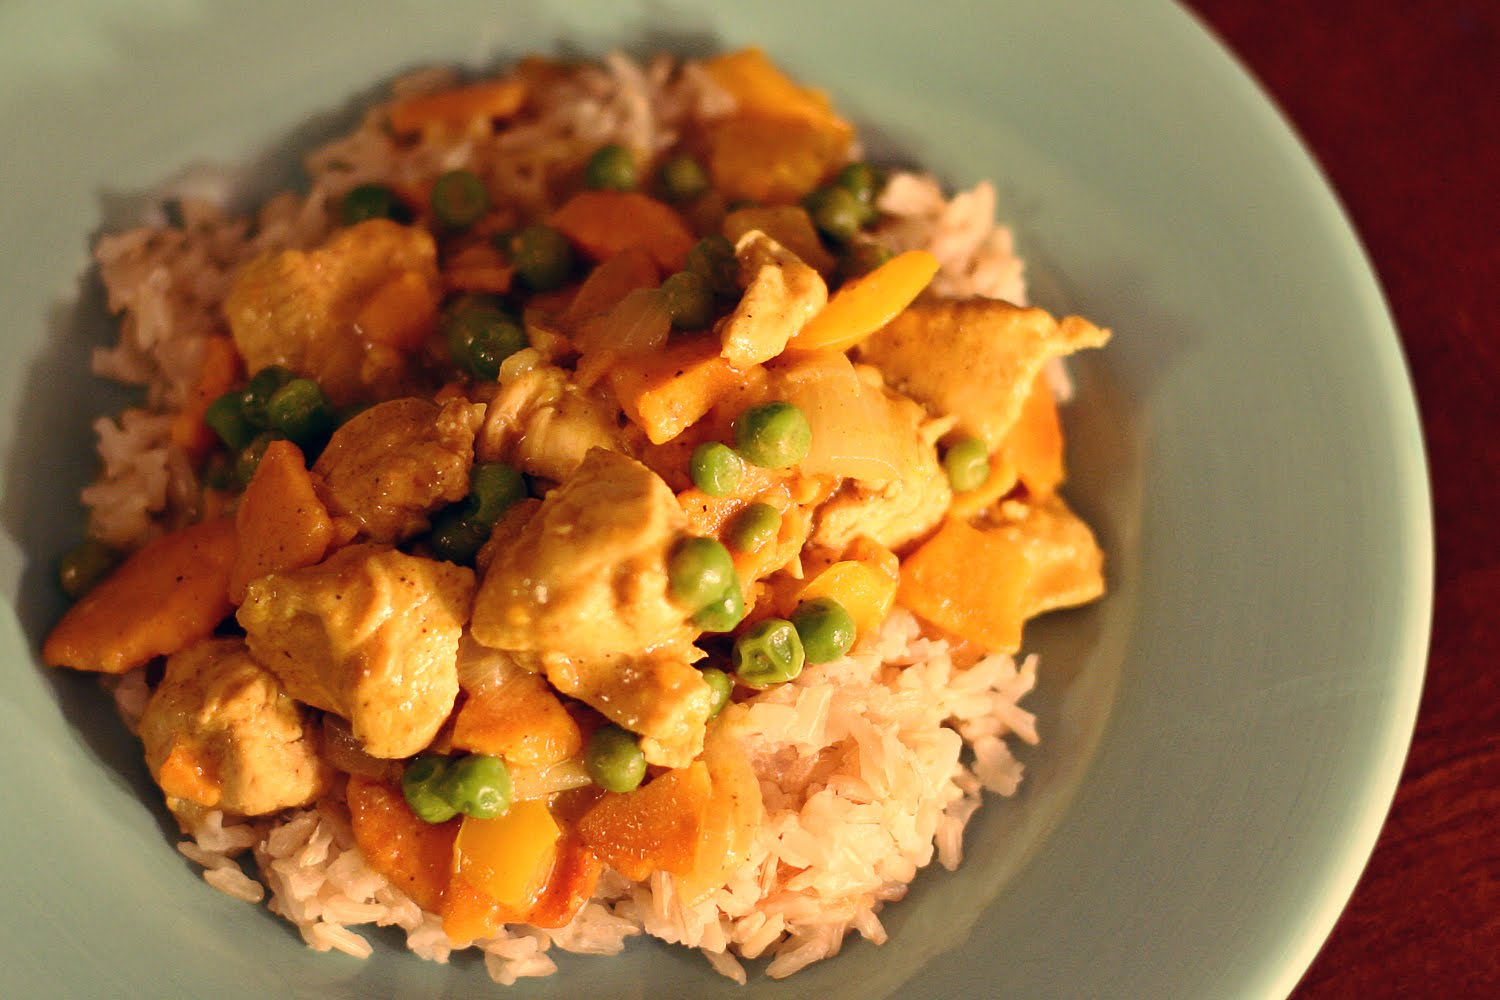 colemans in love.: sweet potato & chicken curry-in-a-hurry :)